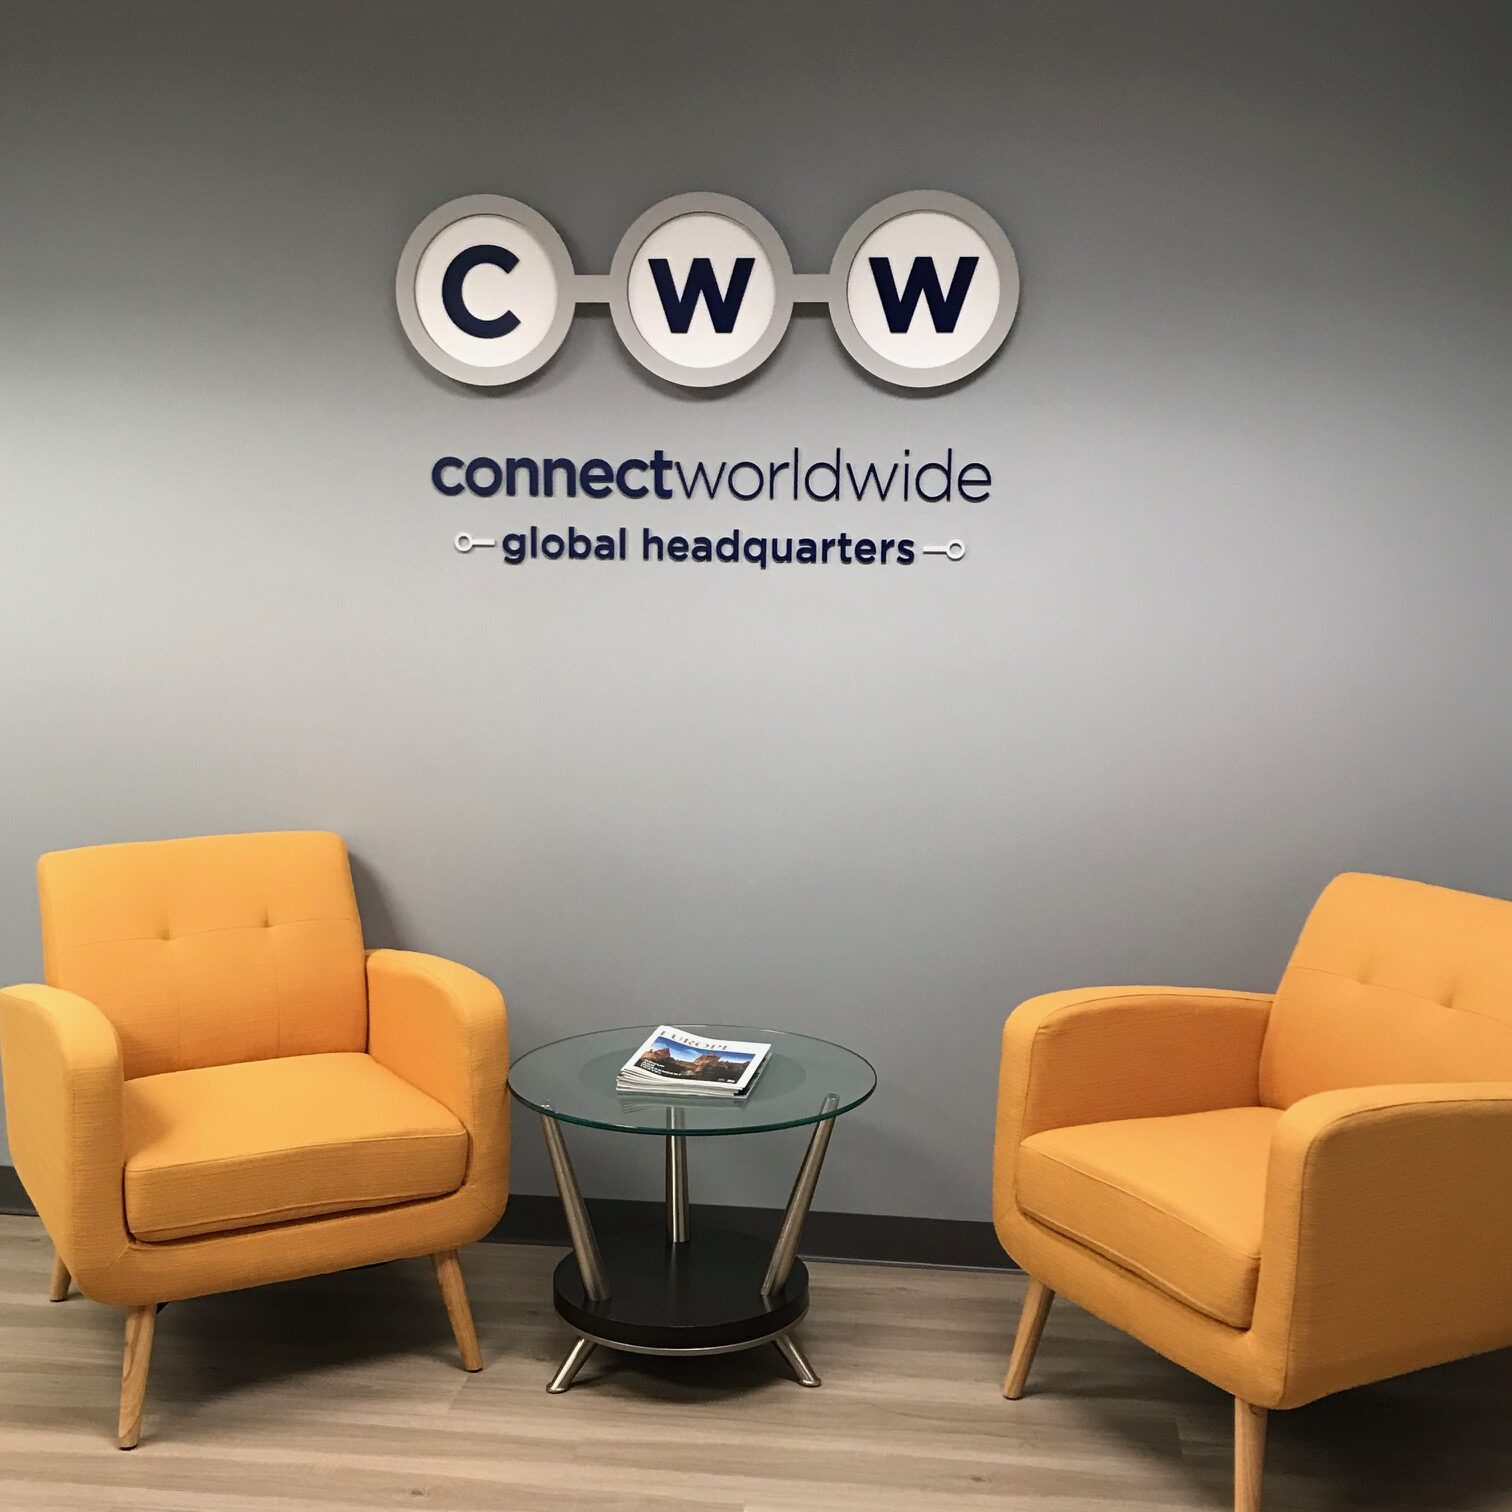 connect worldwide headquarters lobby